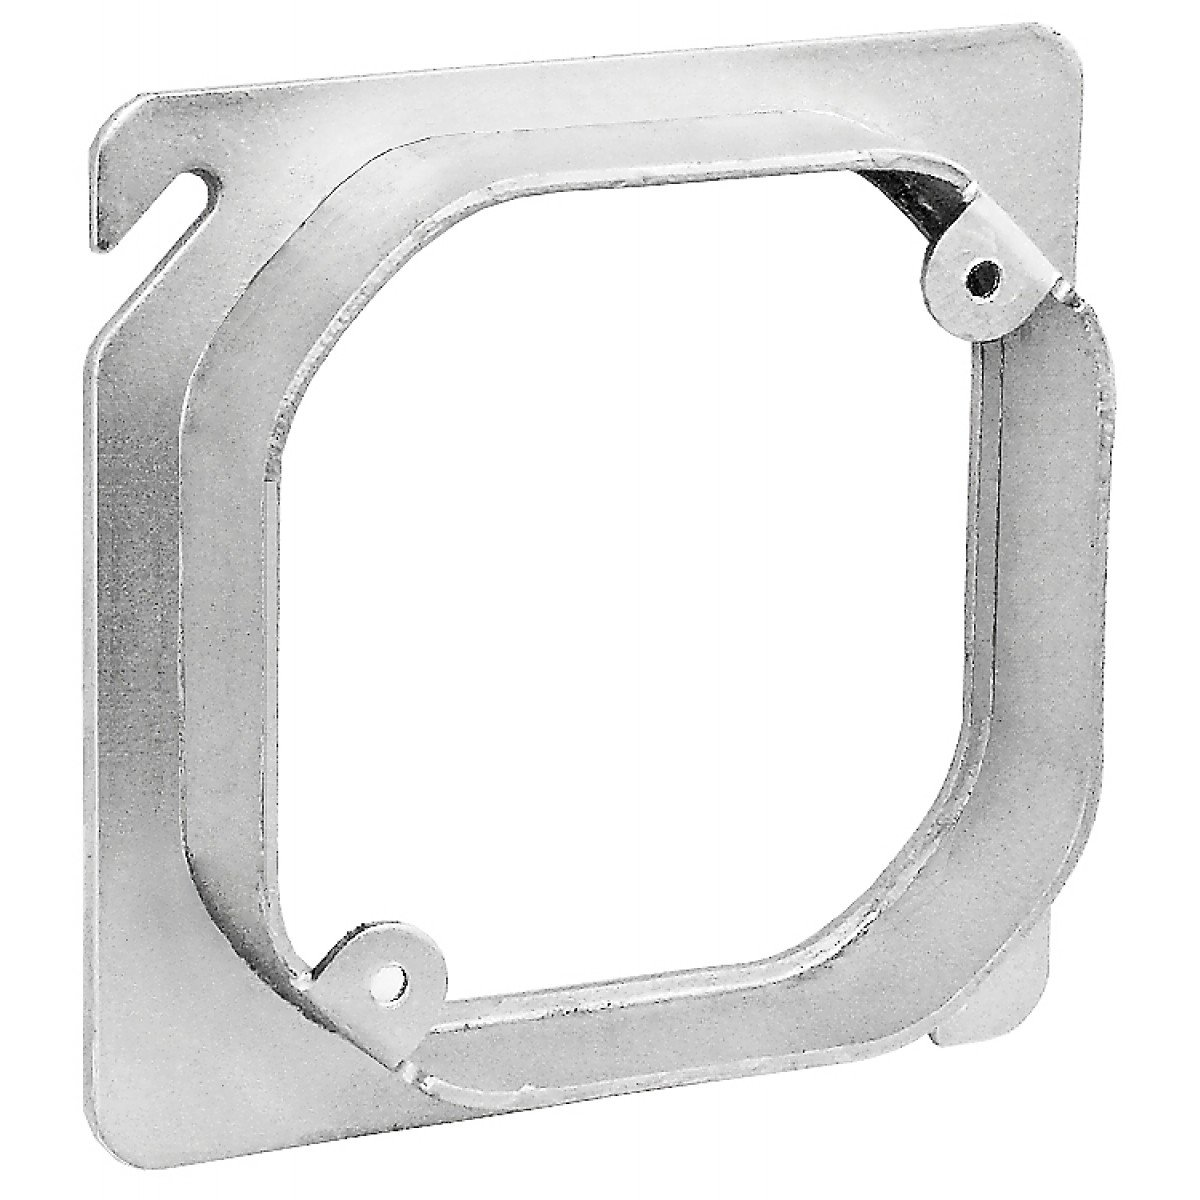 2 Pcs Raised For Lighting Retrofit Applications 5//8 In Zinc Plated Steel 4 Square to Octagon Device Ring